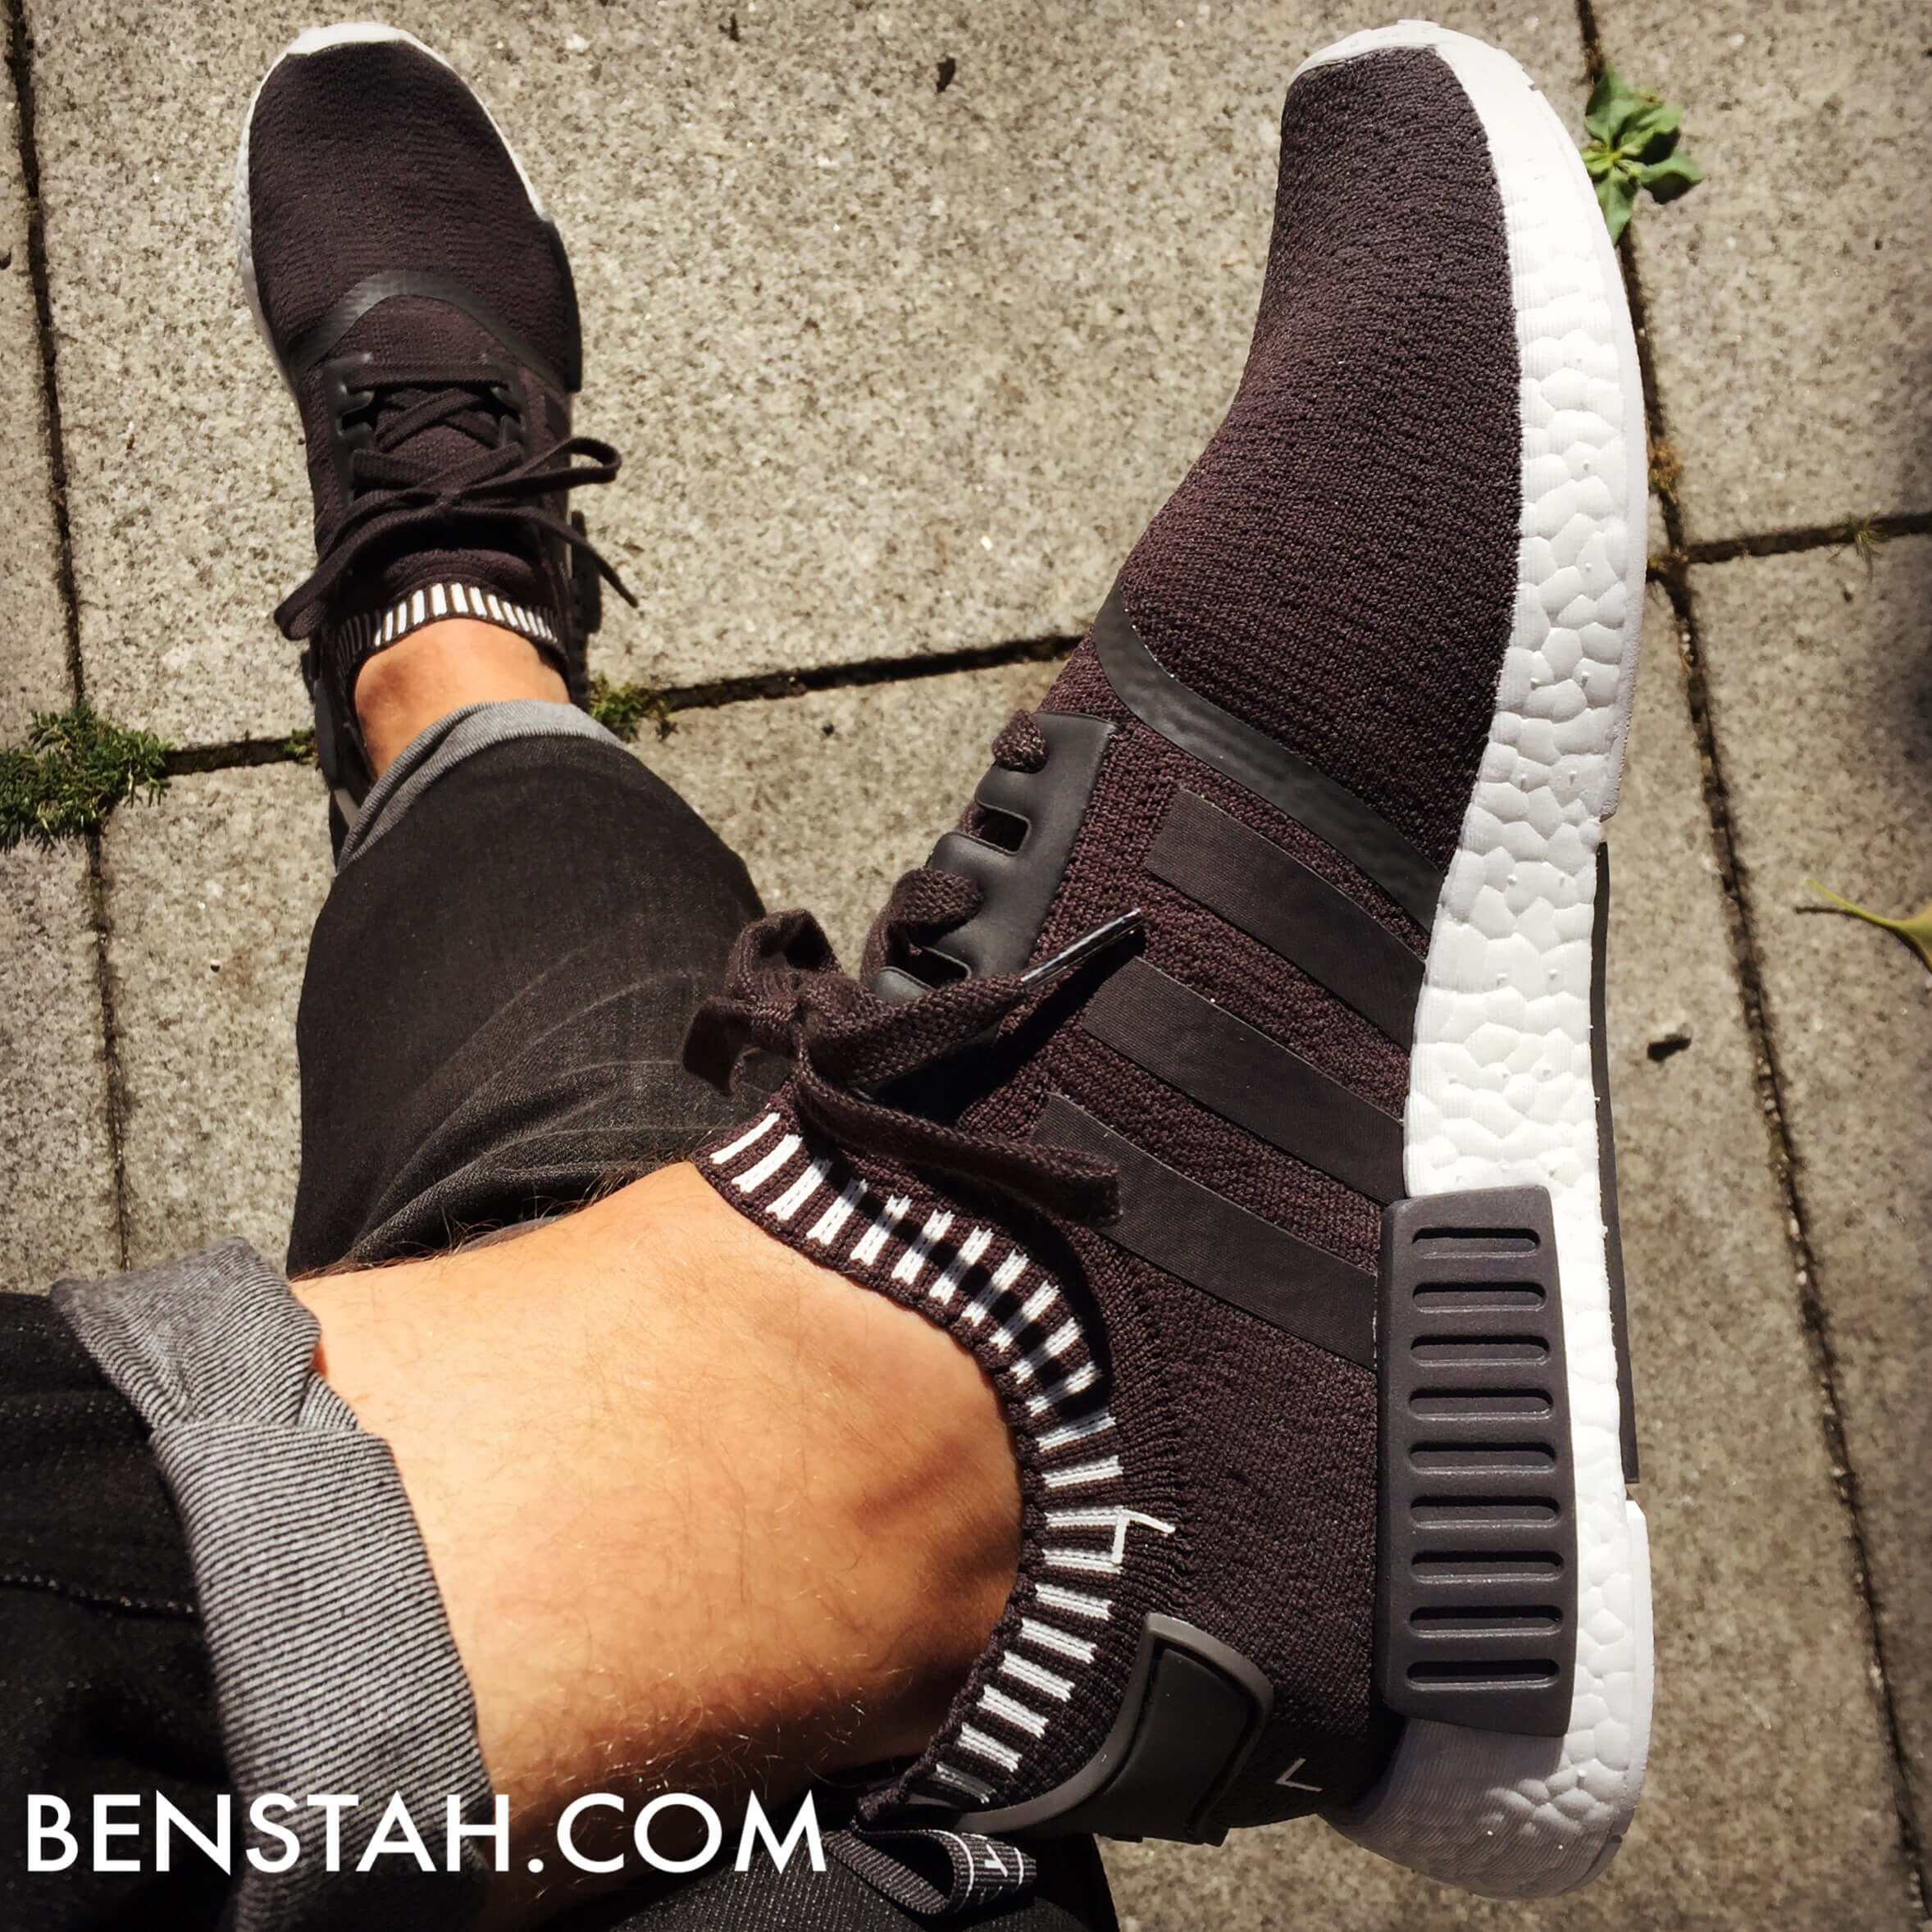 adidas-nmd-r1-primeknit-japan-boost-solid-grey-tope-view-bensta-onfeet-1